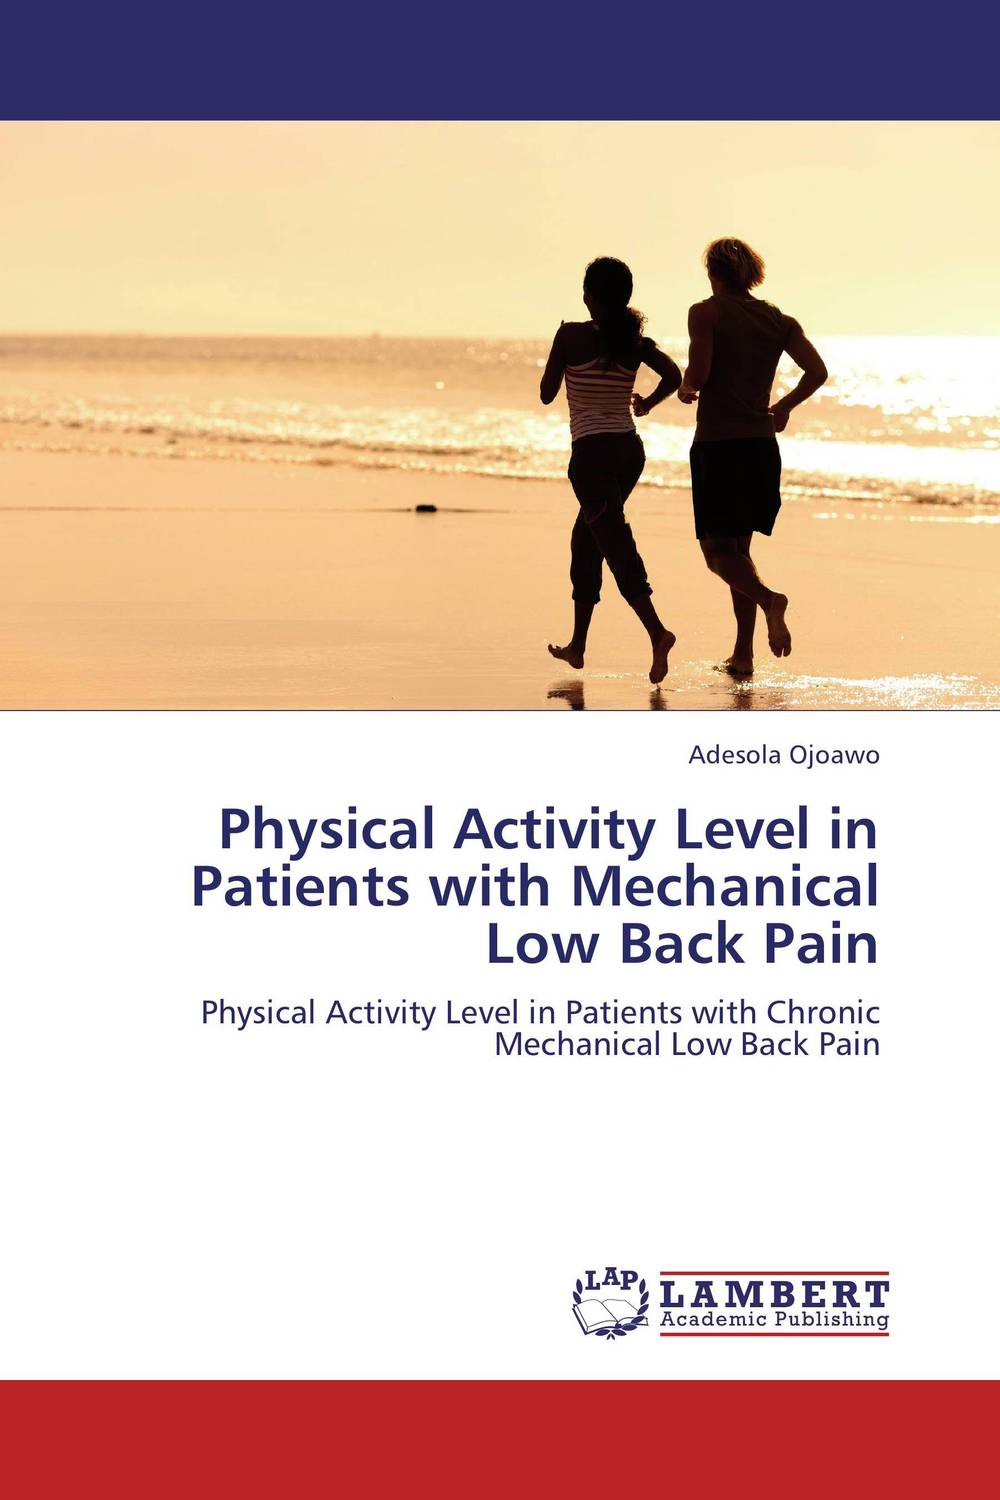 Physical Activity Level in Patients with Mechanical Low Back Pain simran kaur narinder pal singh and ajay kumar jain malnutrition in esrd patients on maintenance hemodialysis